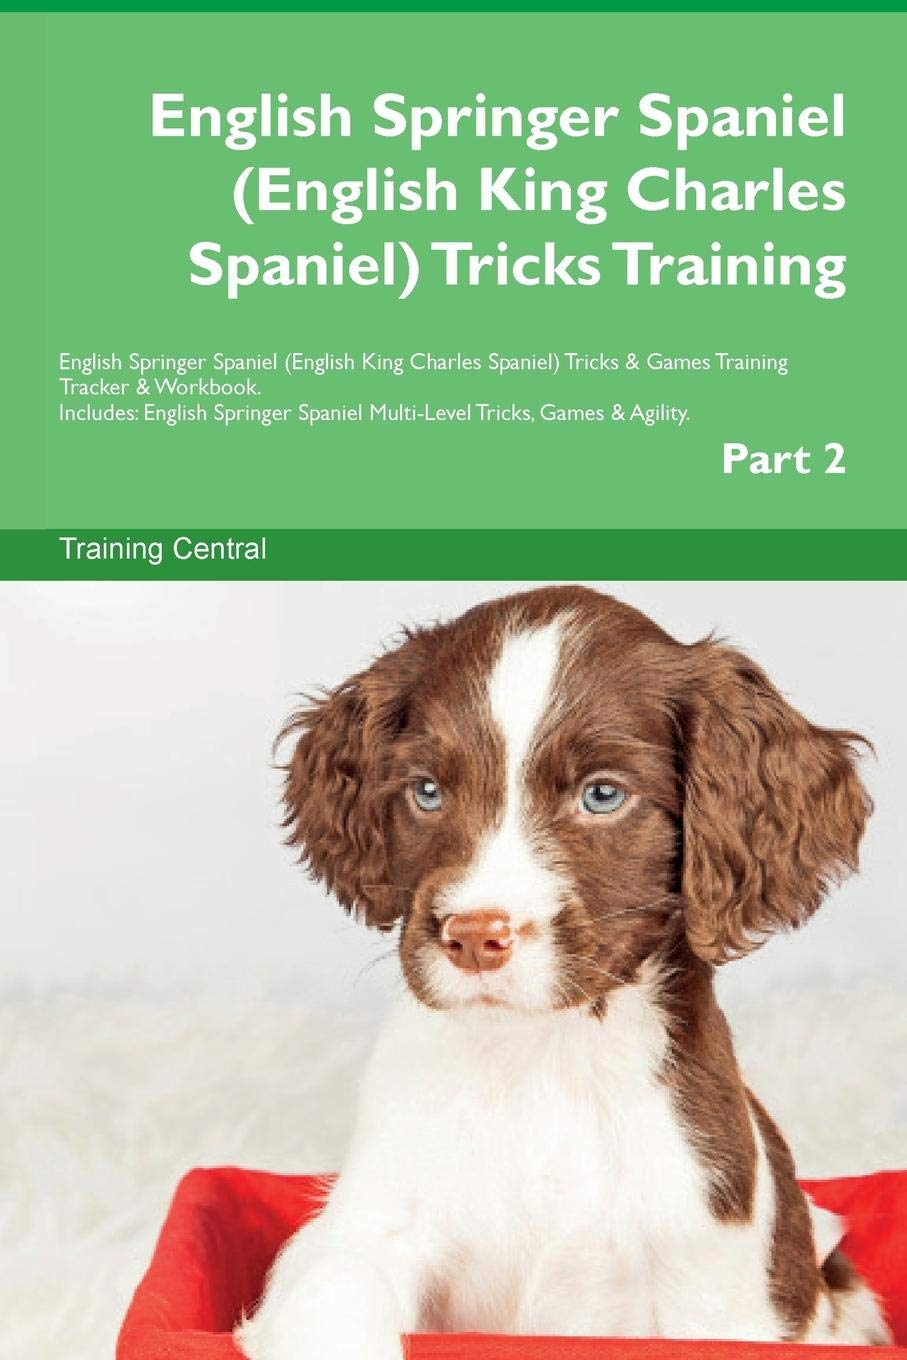 Download English Springer Spaniel (English King Charles Spaniel) Tricks Training English Springer Spaniel (English King Charles Spaniel) Tricks & Games ... Multi-Level Tricks, Games & Agility. Part 2 pdf epub